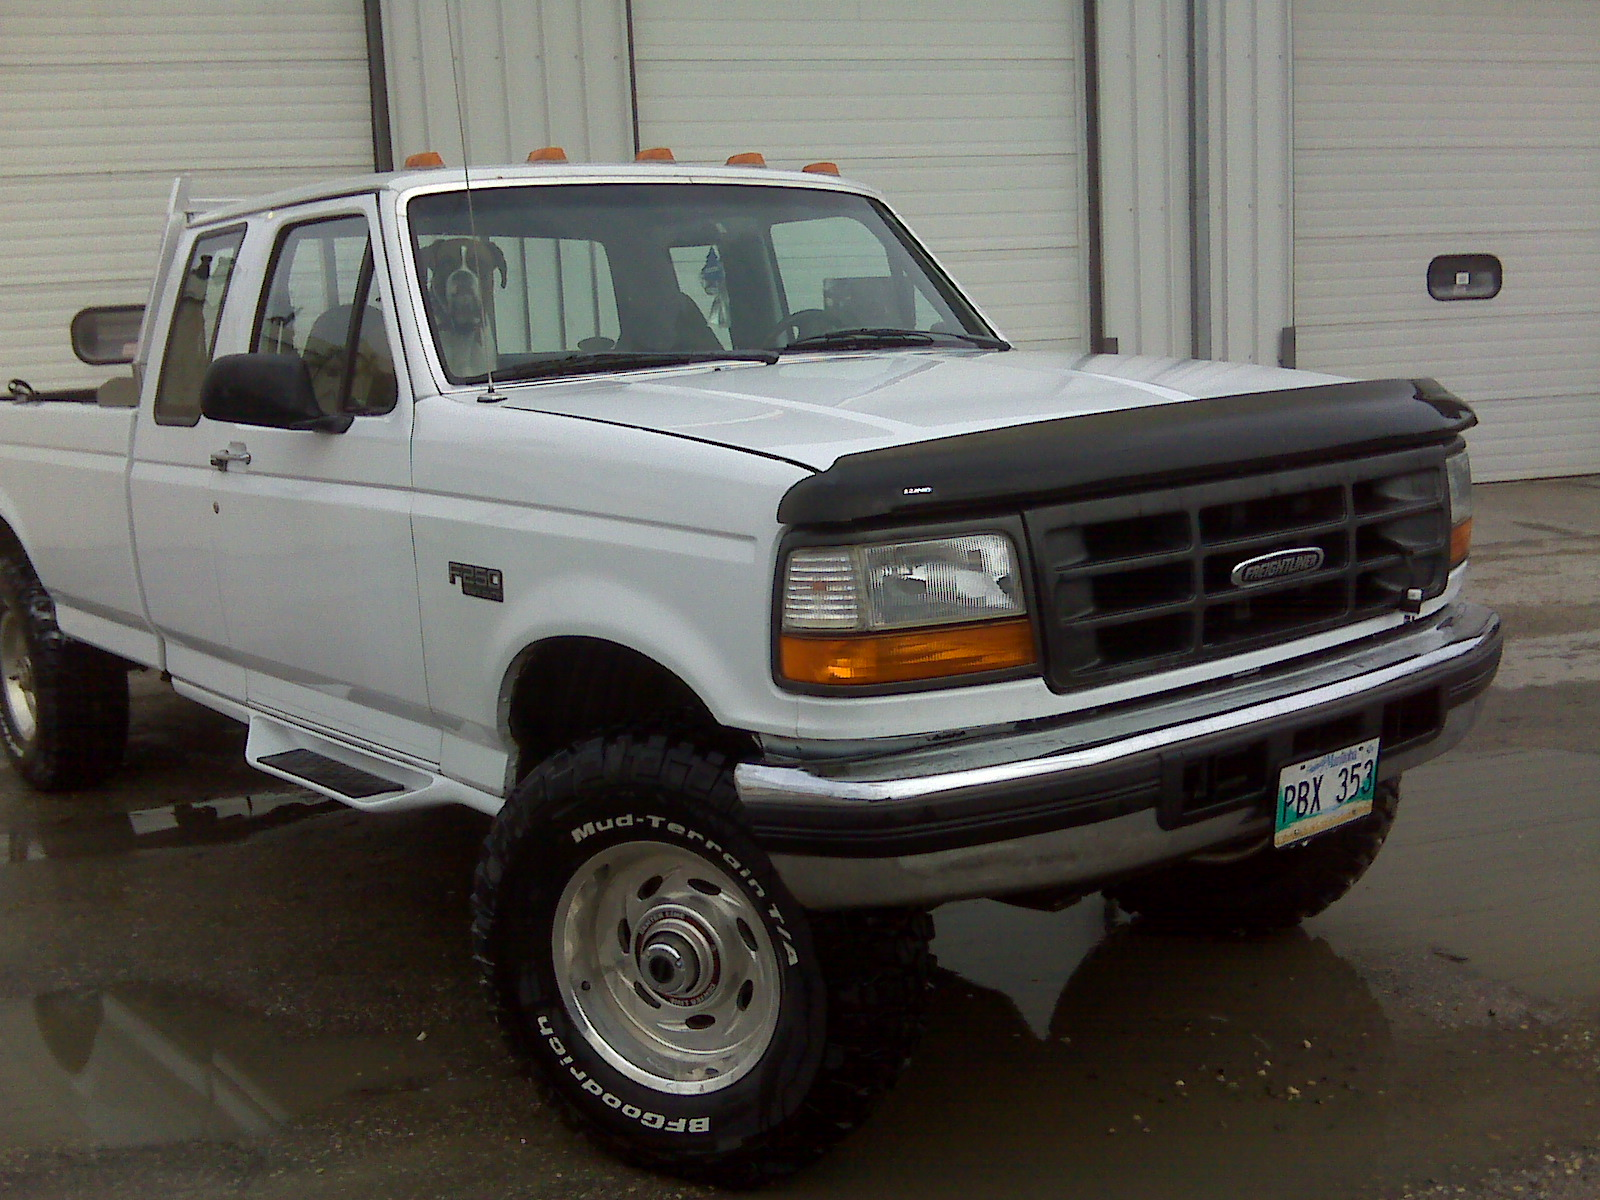 1997 Ford F-250 - Exterior Pictures